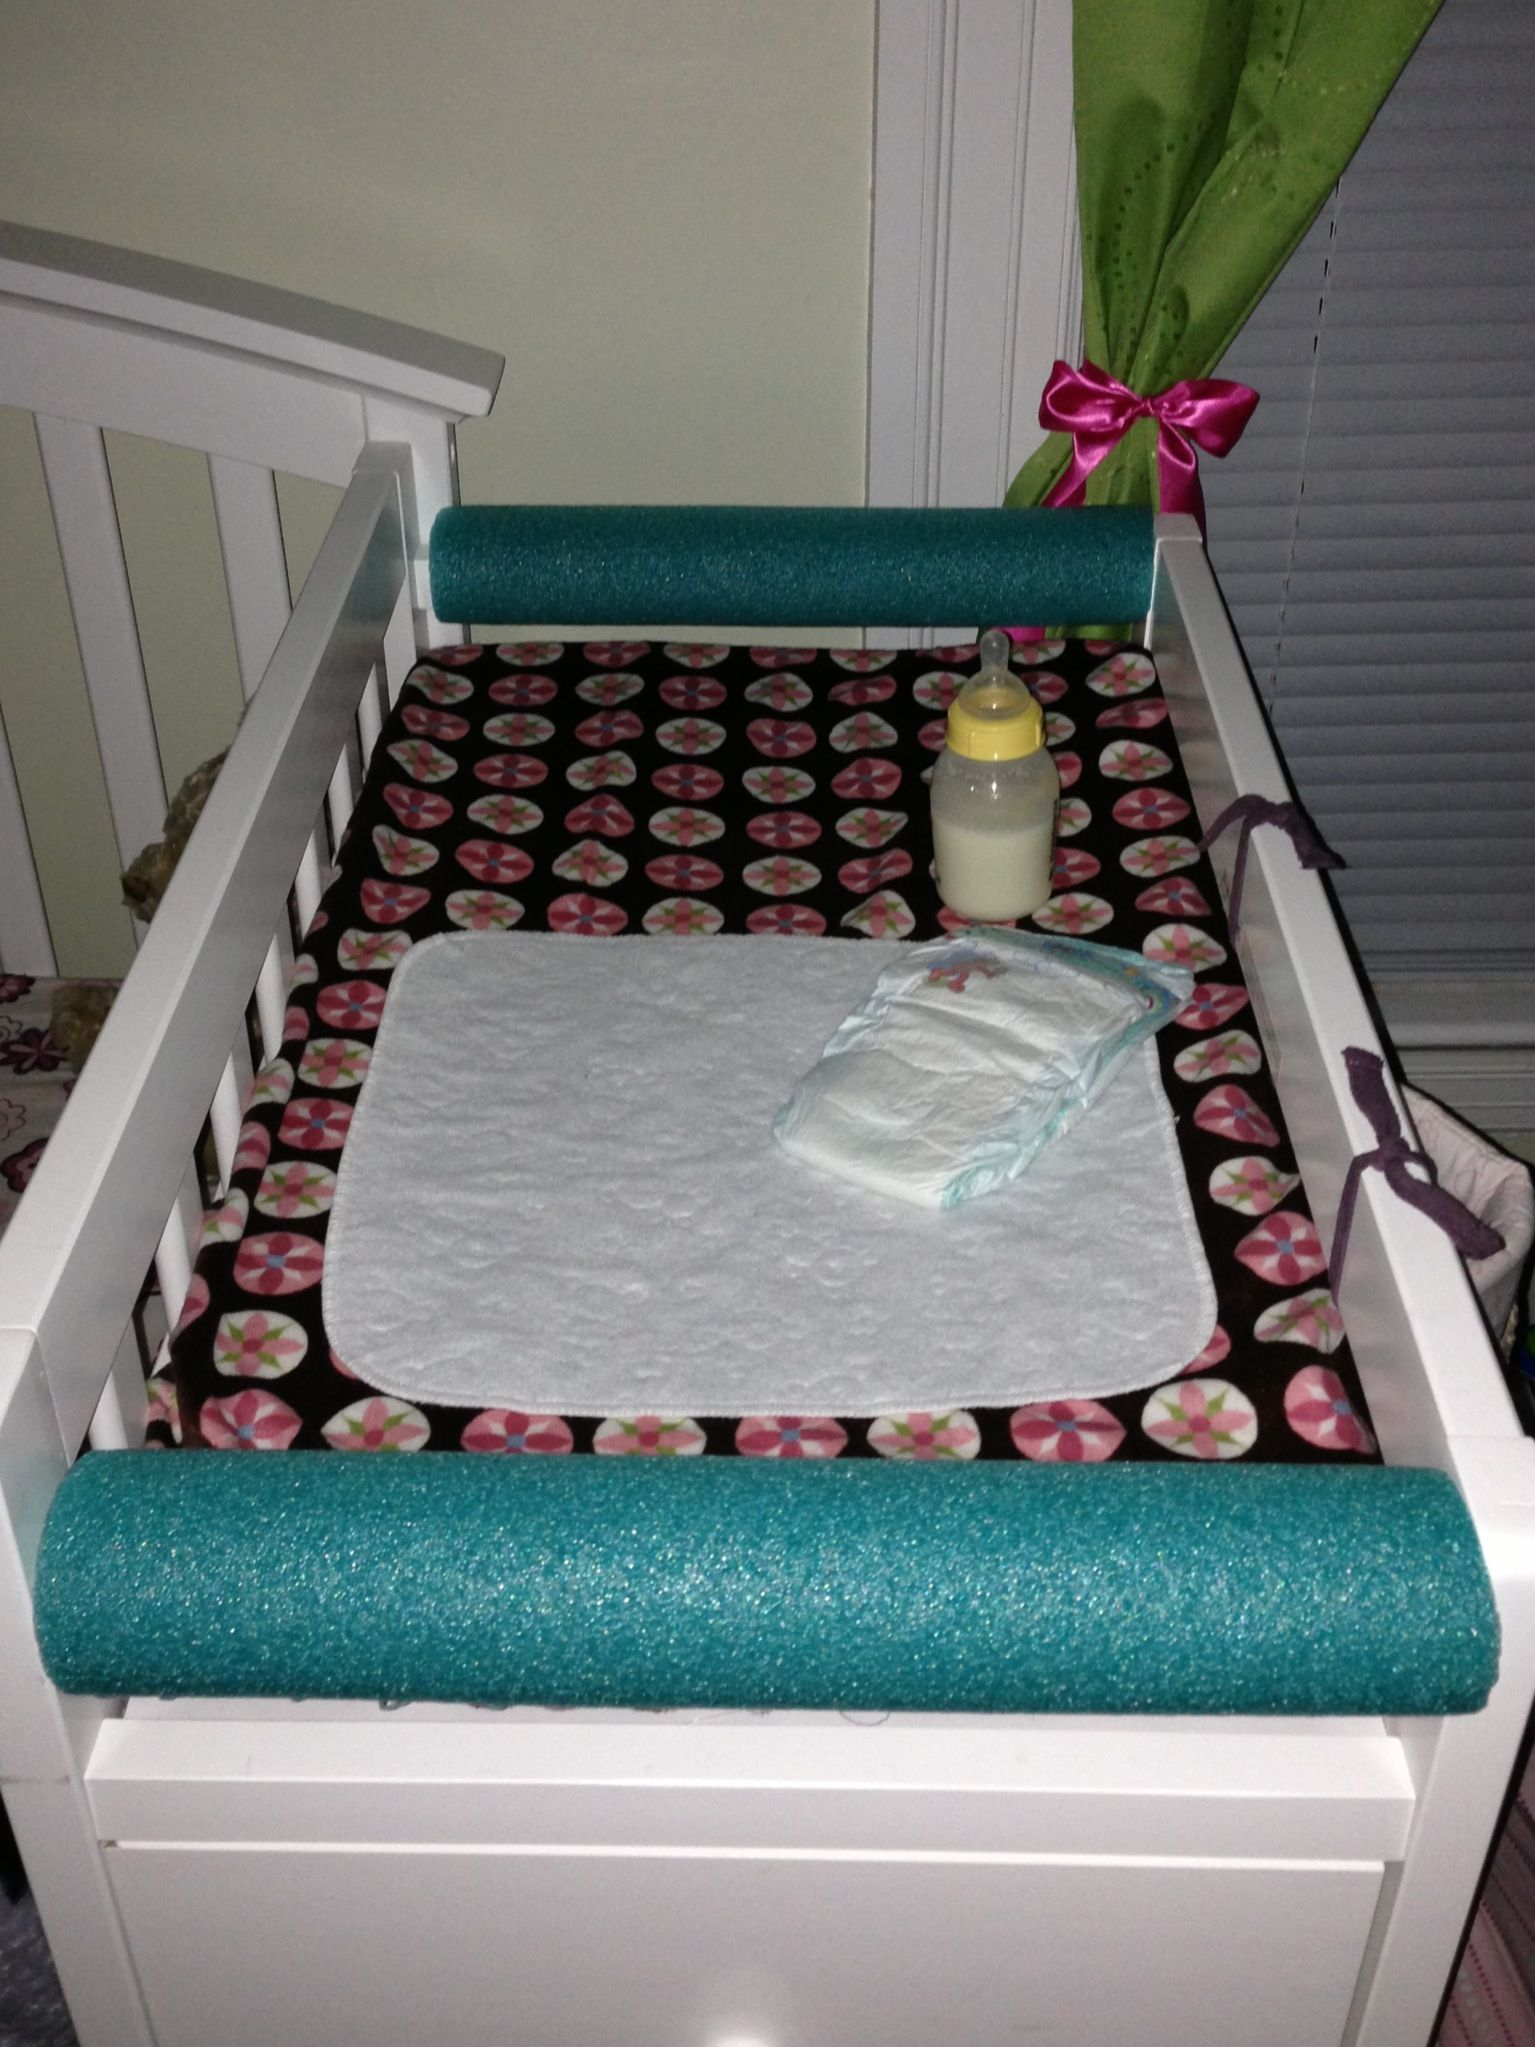 Pool Noodle Bumpers For The Changing Table Keeps Baby Girl From